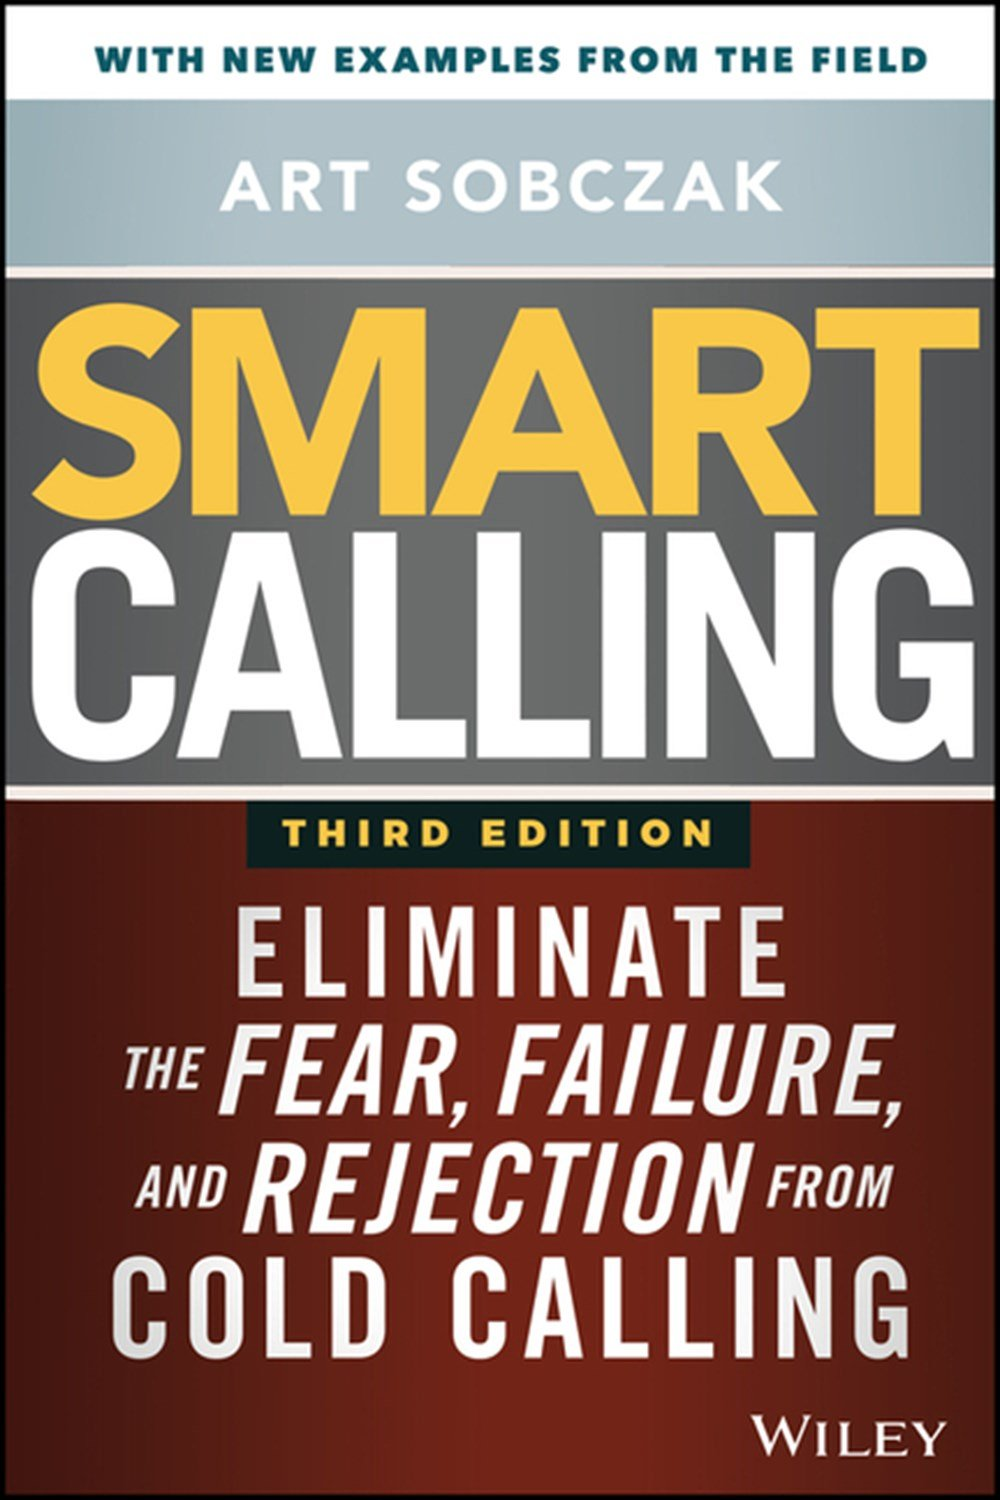 Smart Calling Eliminate the Fear, Failure, and Rejection from Cold Calling